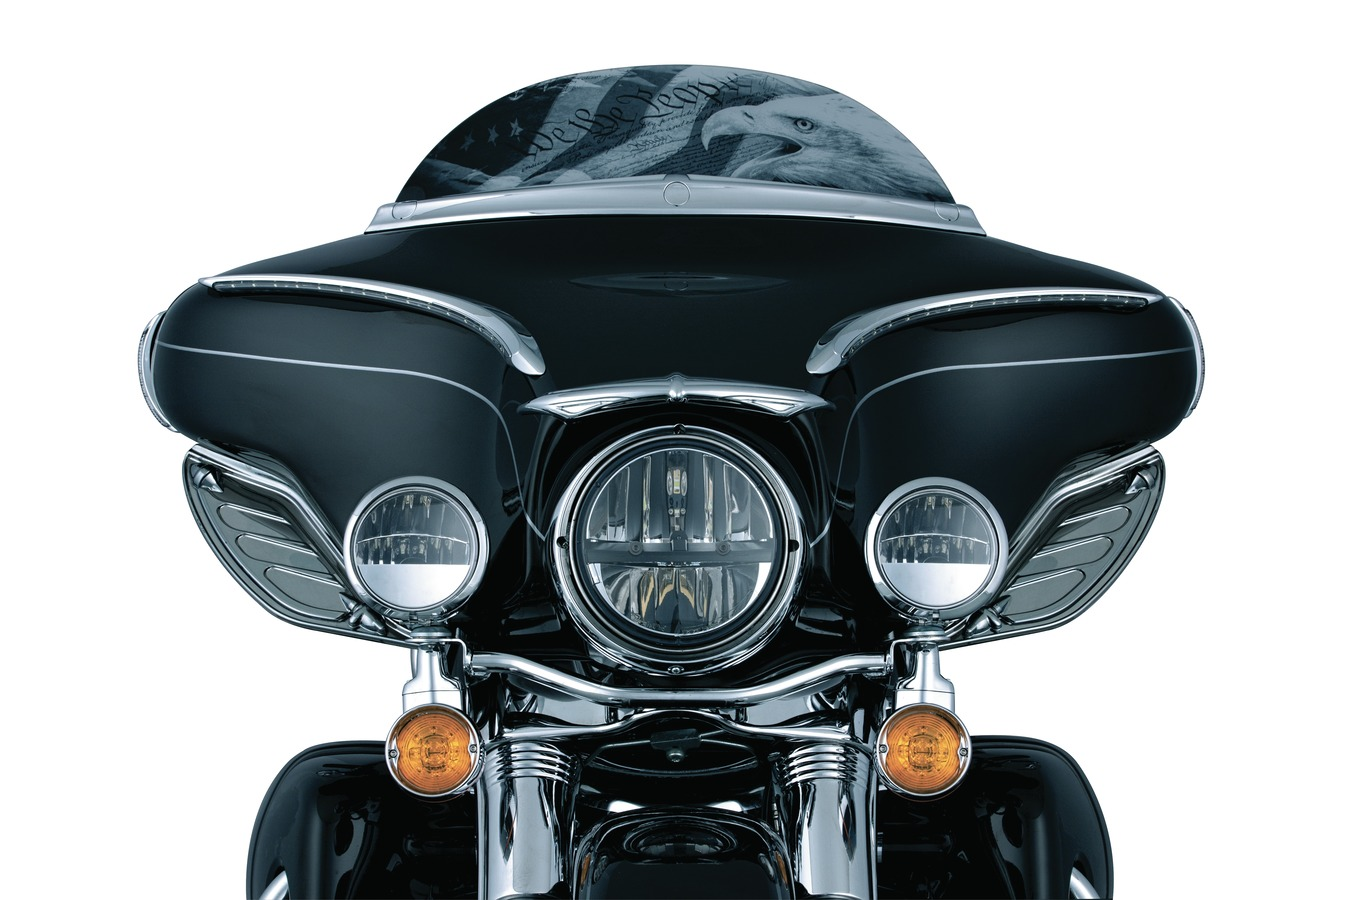 Kuryakyn Phase 7 4 1/2 Inch L.E.D. Passing Lamps for Harley Davidson and Custom Motorcycle Applications (2247)